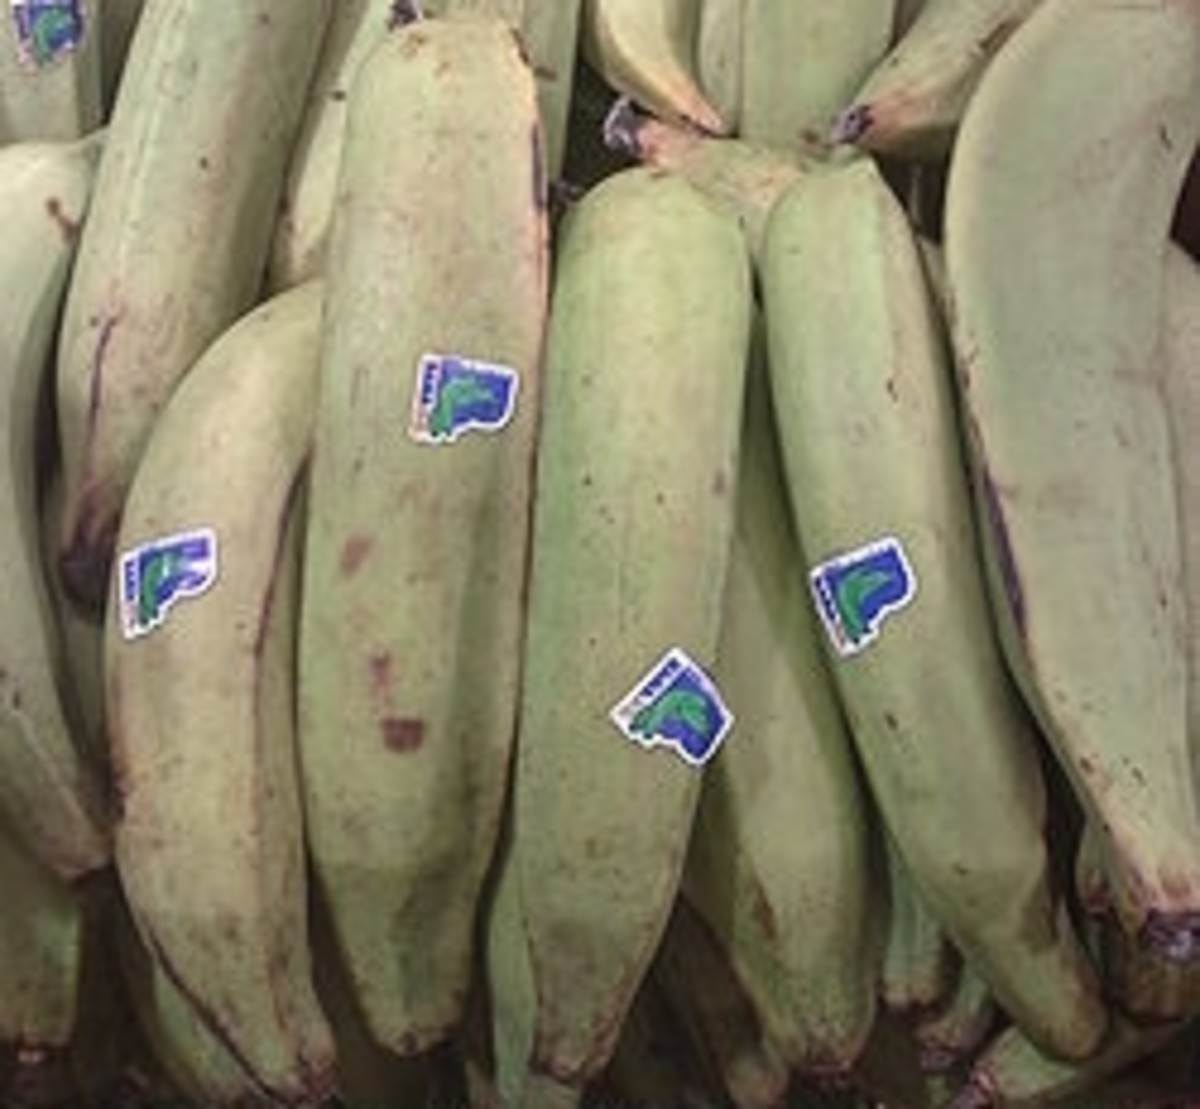 Plantains, source: Wikipedia